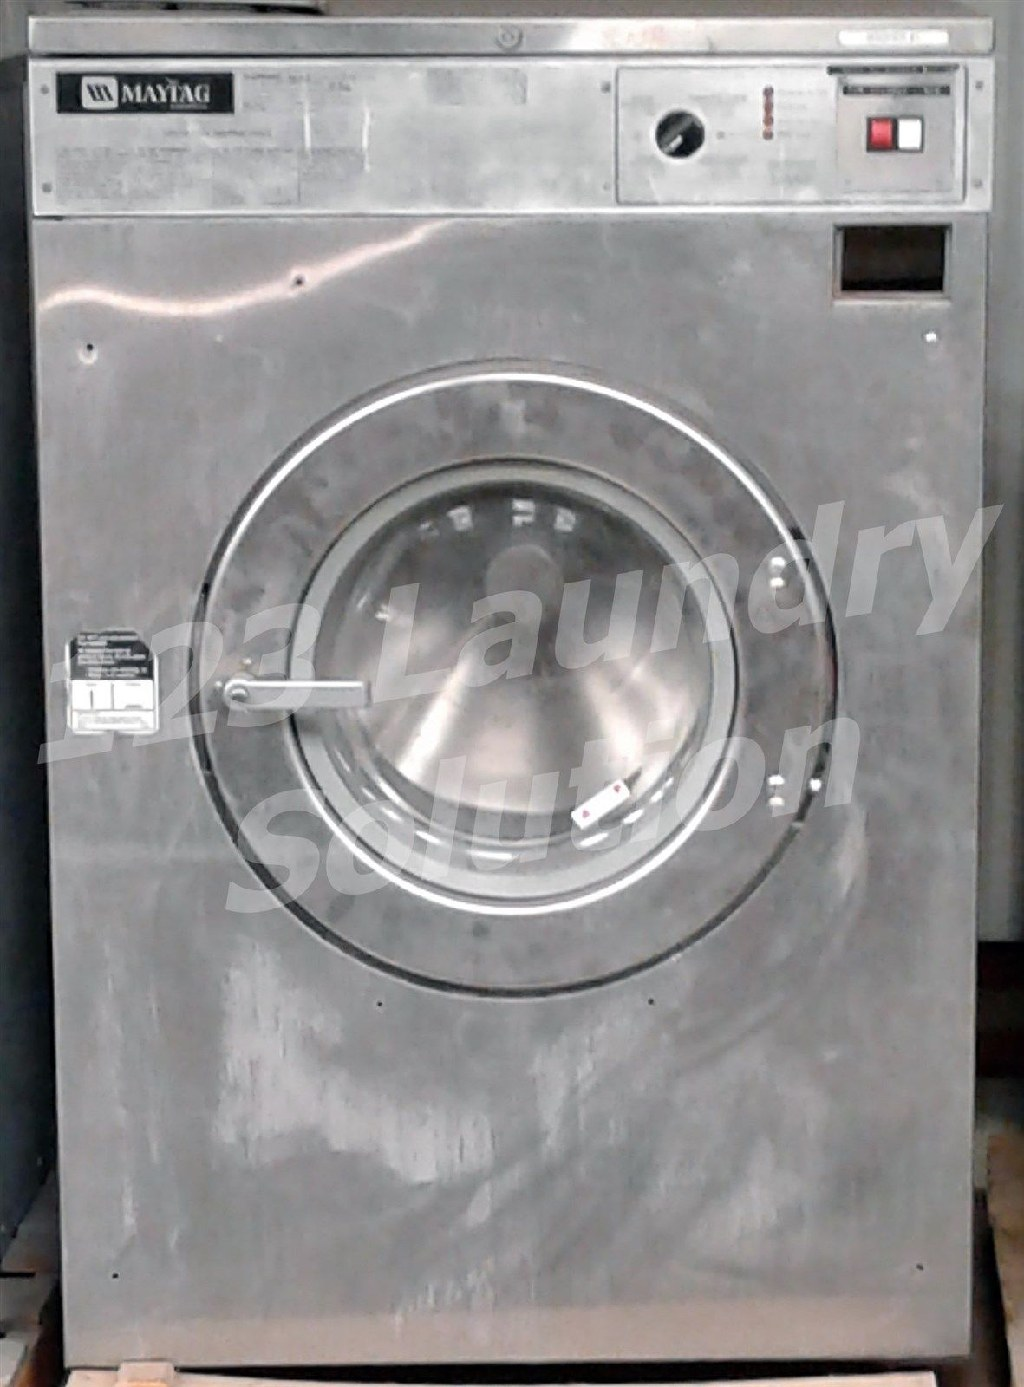 Coin Laundry Maytag Front Load Washer OPL 50LB MFR50 3PH Stainless Steel Used